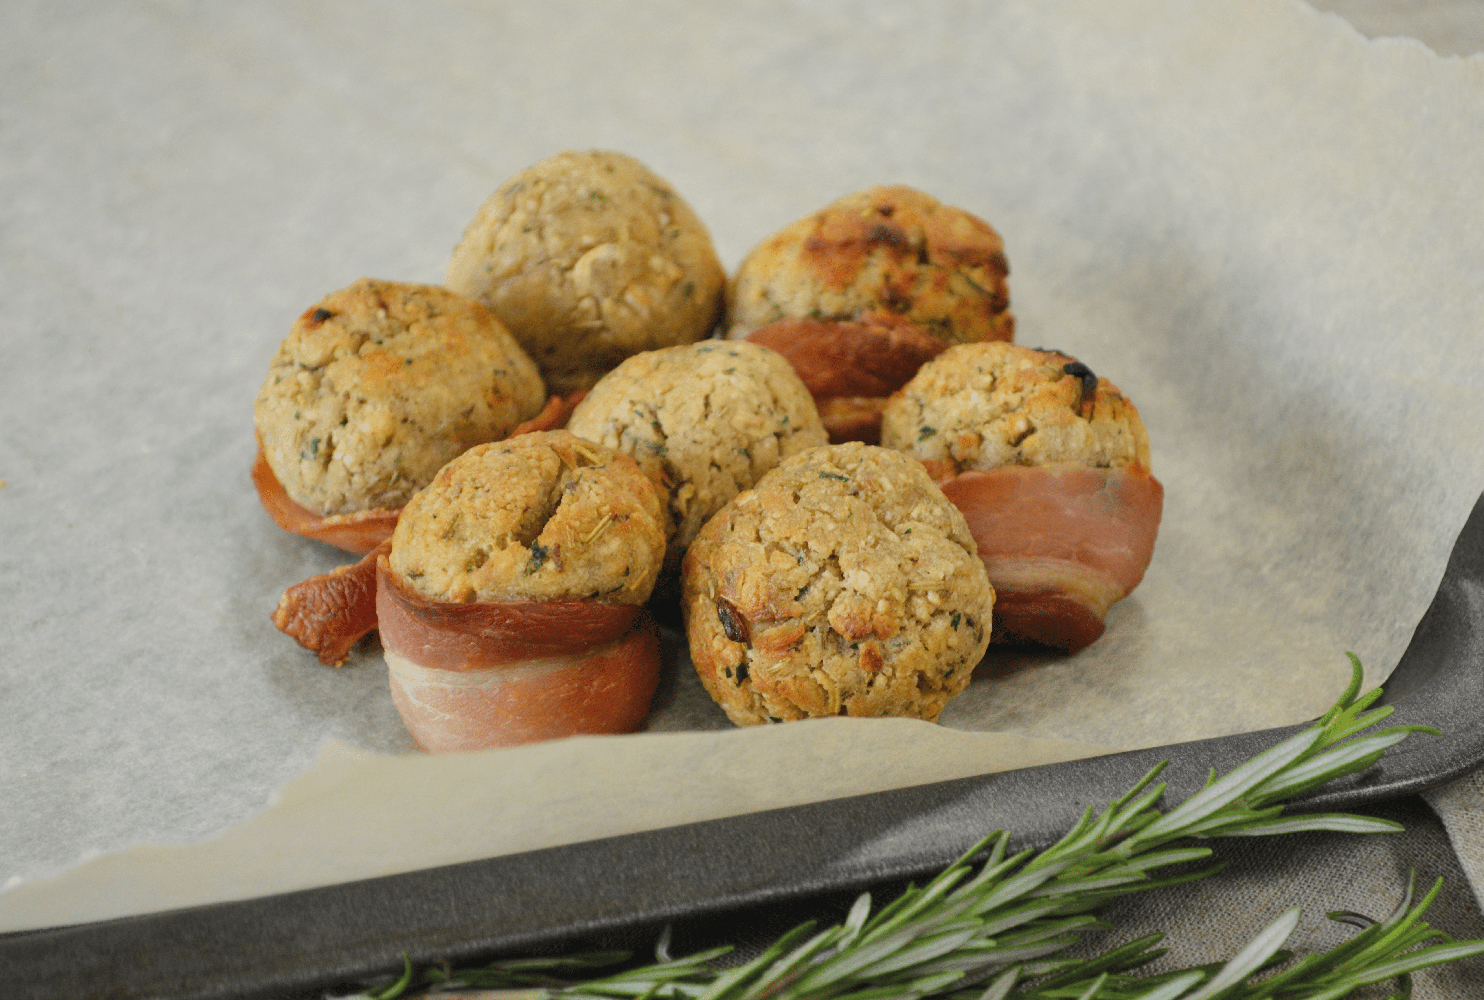 TYKE ROSEMARY & ONION STUFFING MIX